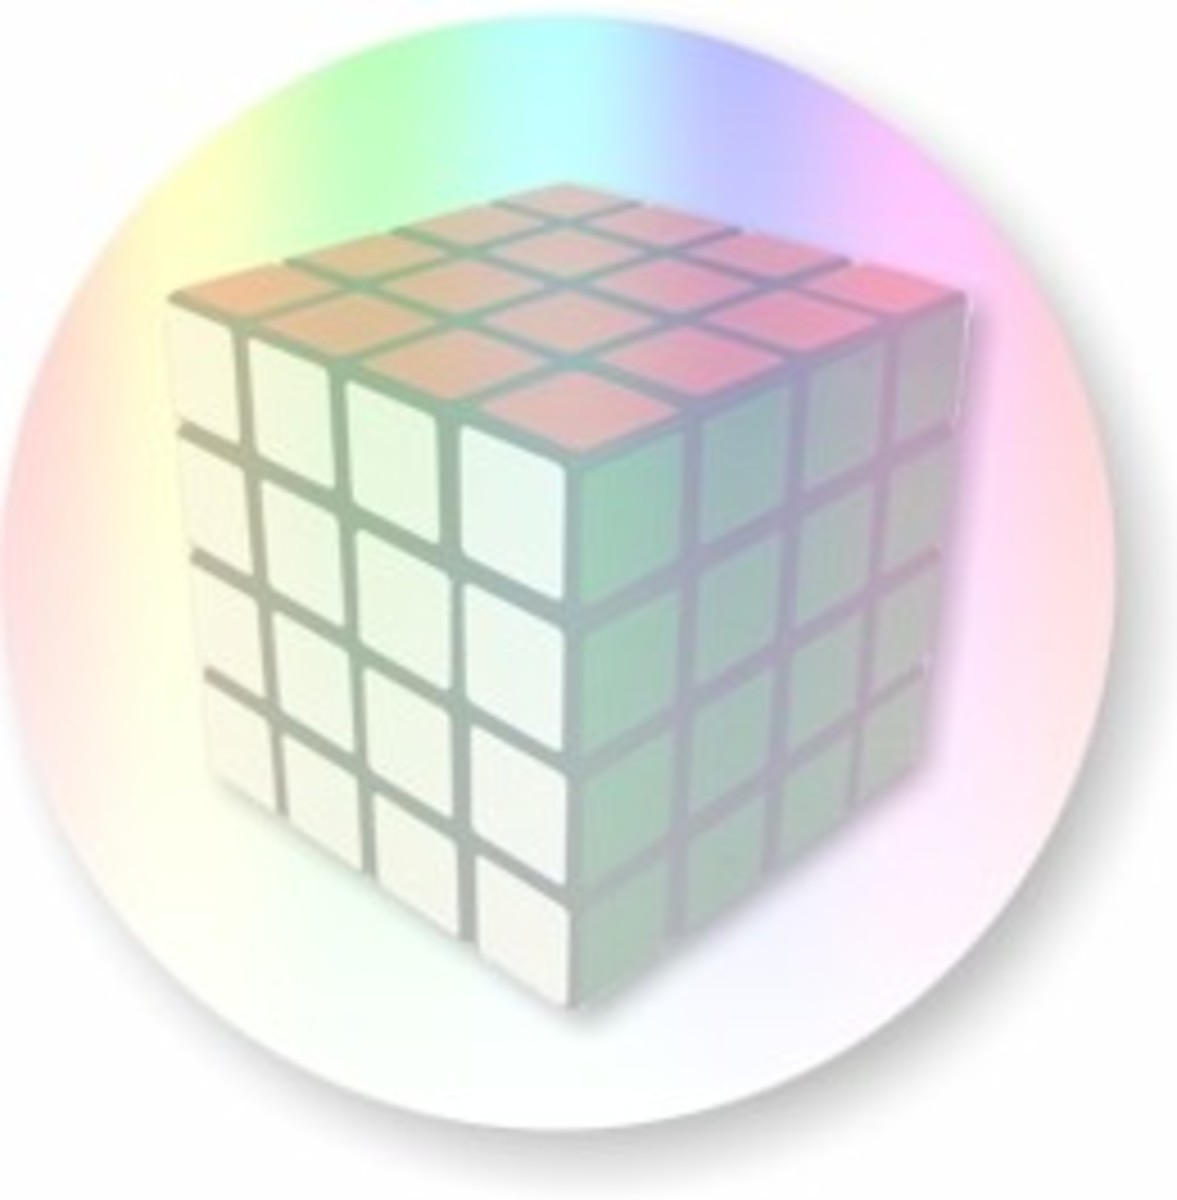 How to solve a 4x4x4 Rubiks Cube